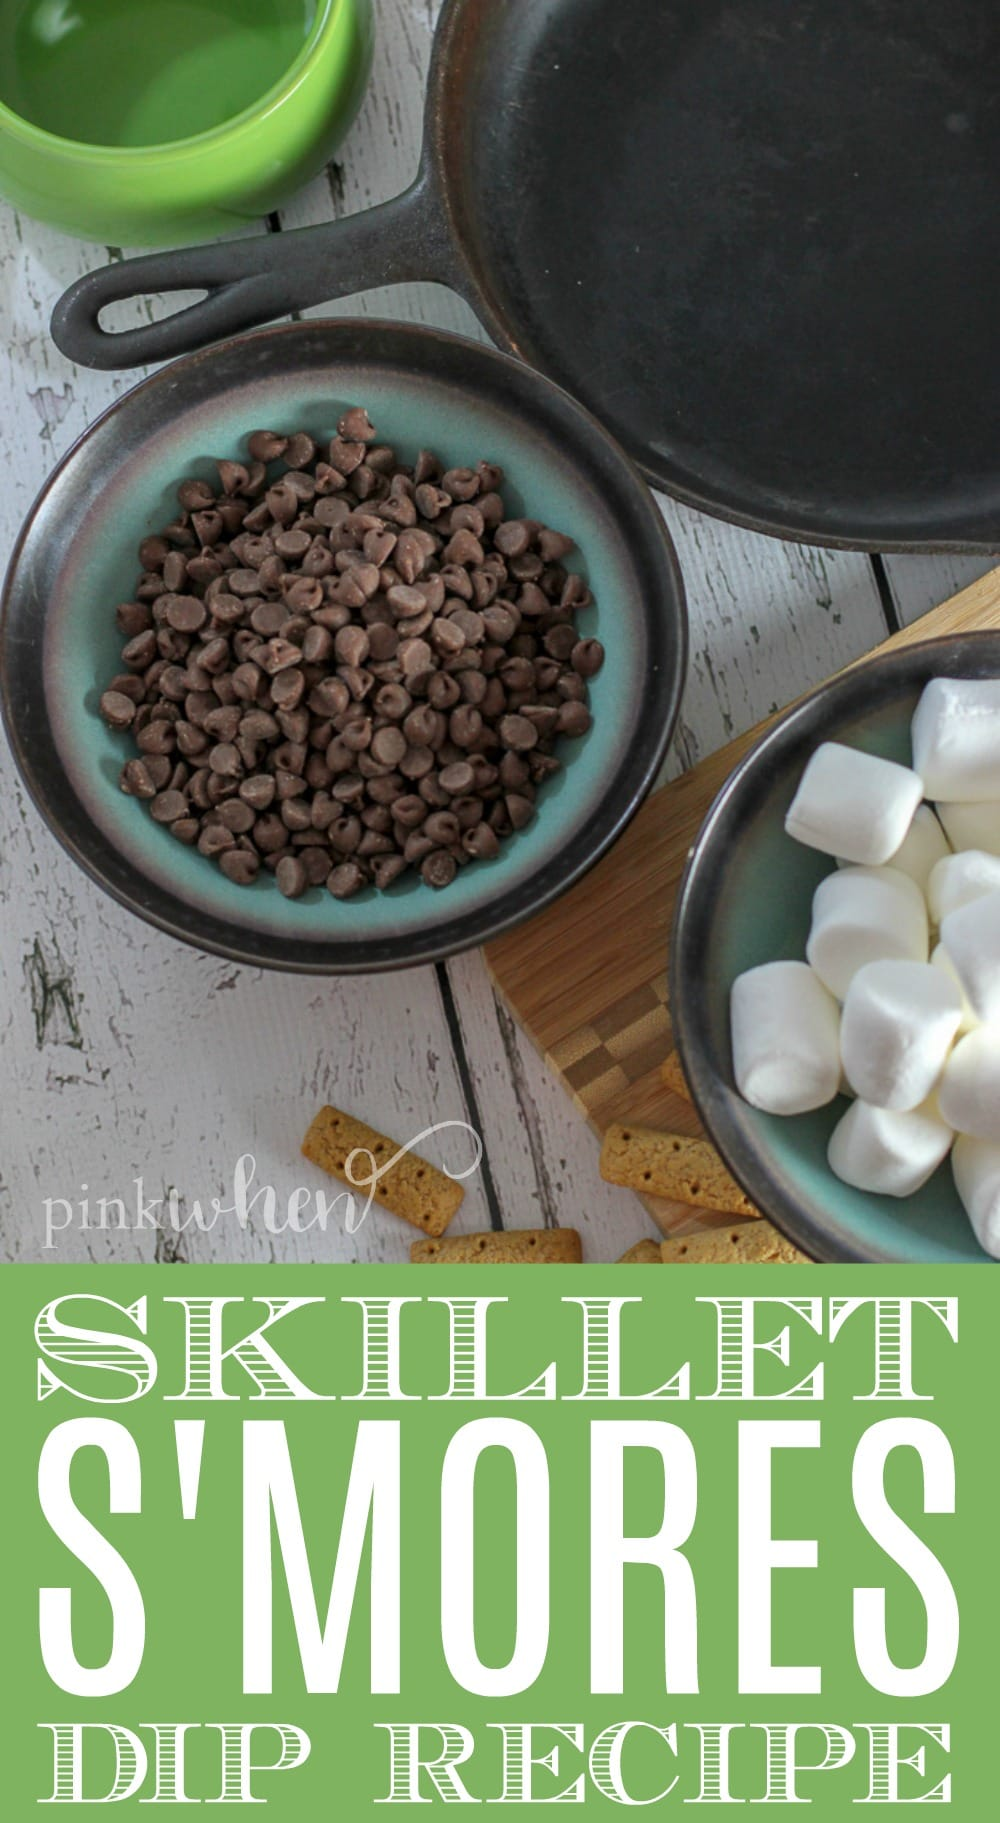 Skillet S'mores Dip Recipe - Easy Smores Dip in under 10 minutes from start to finish!